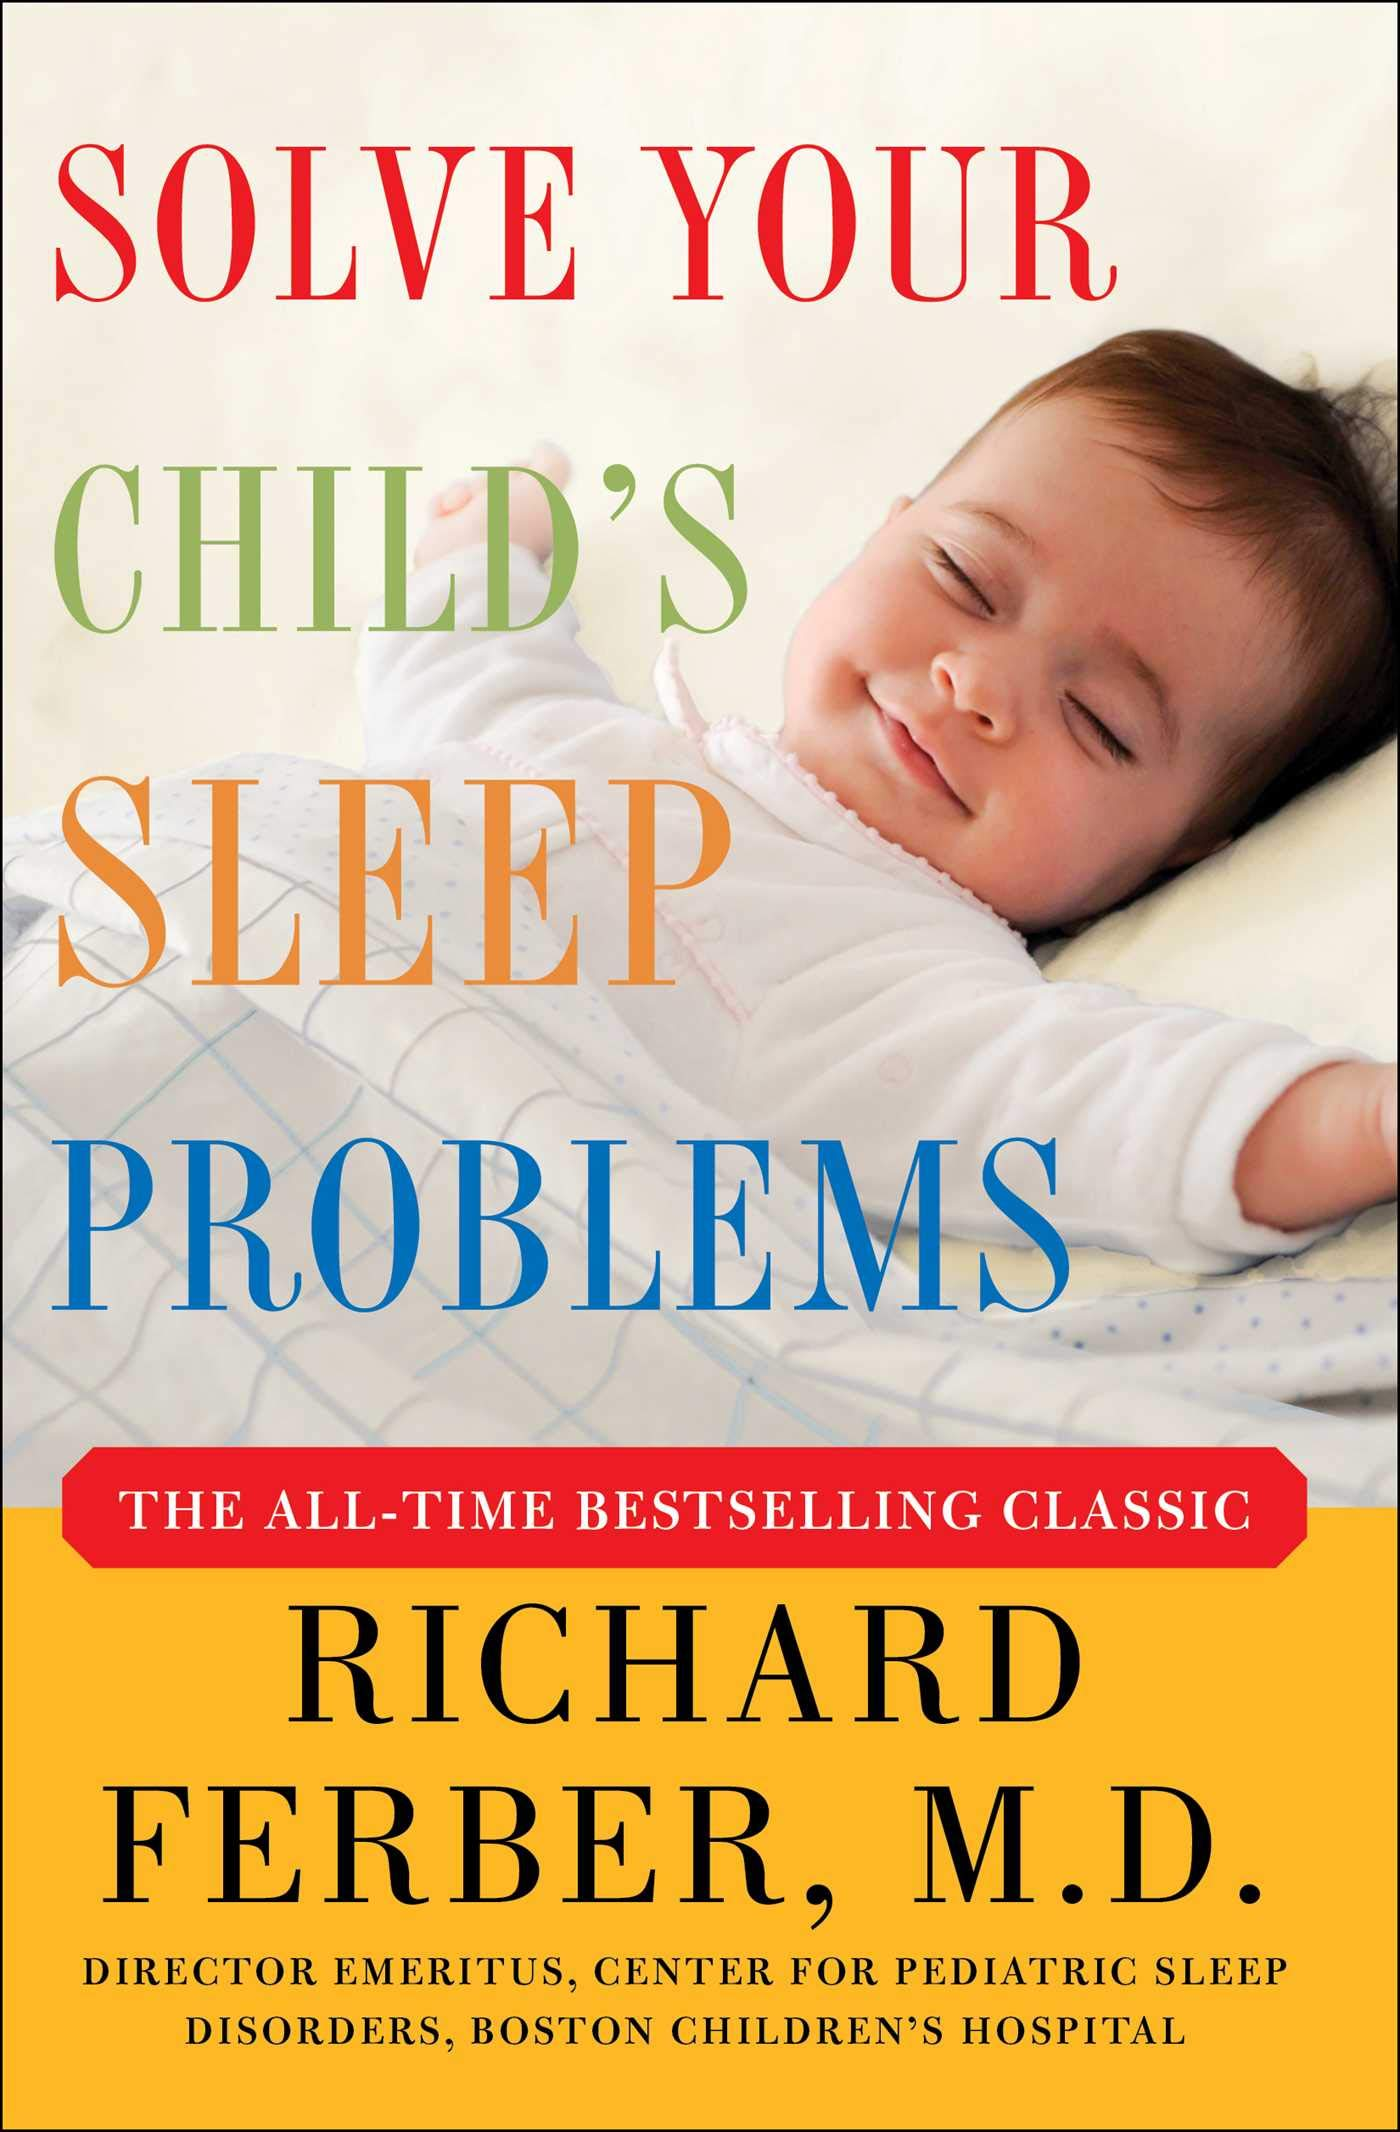 Top 17 Best Sleep Training Books for Babies Reviews in 2019 6